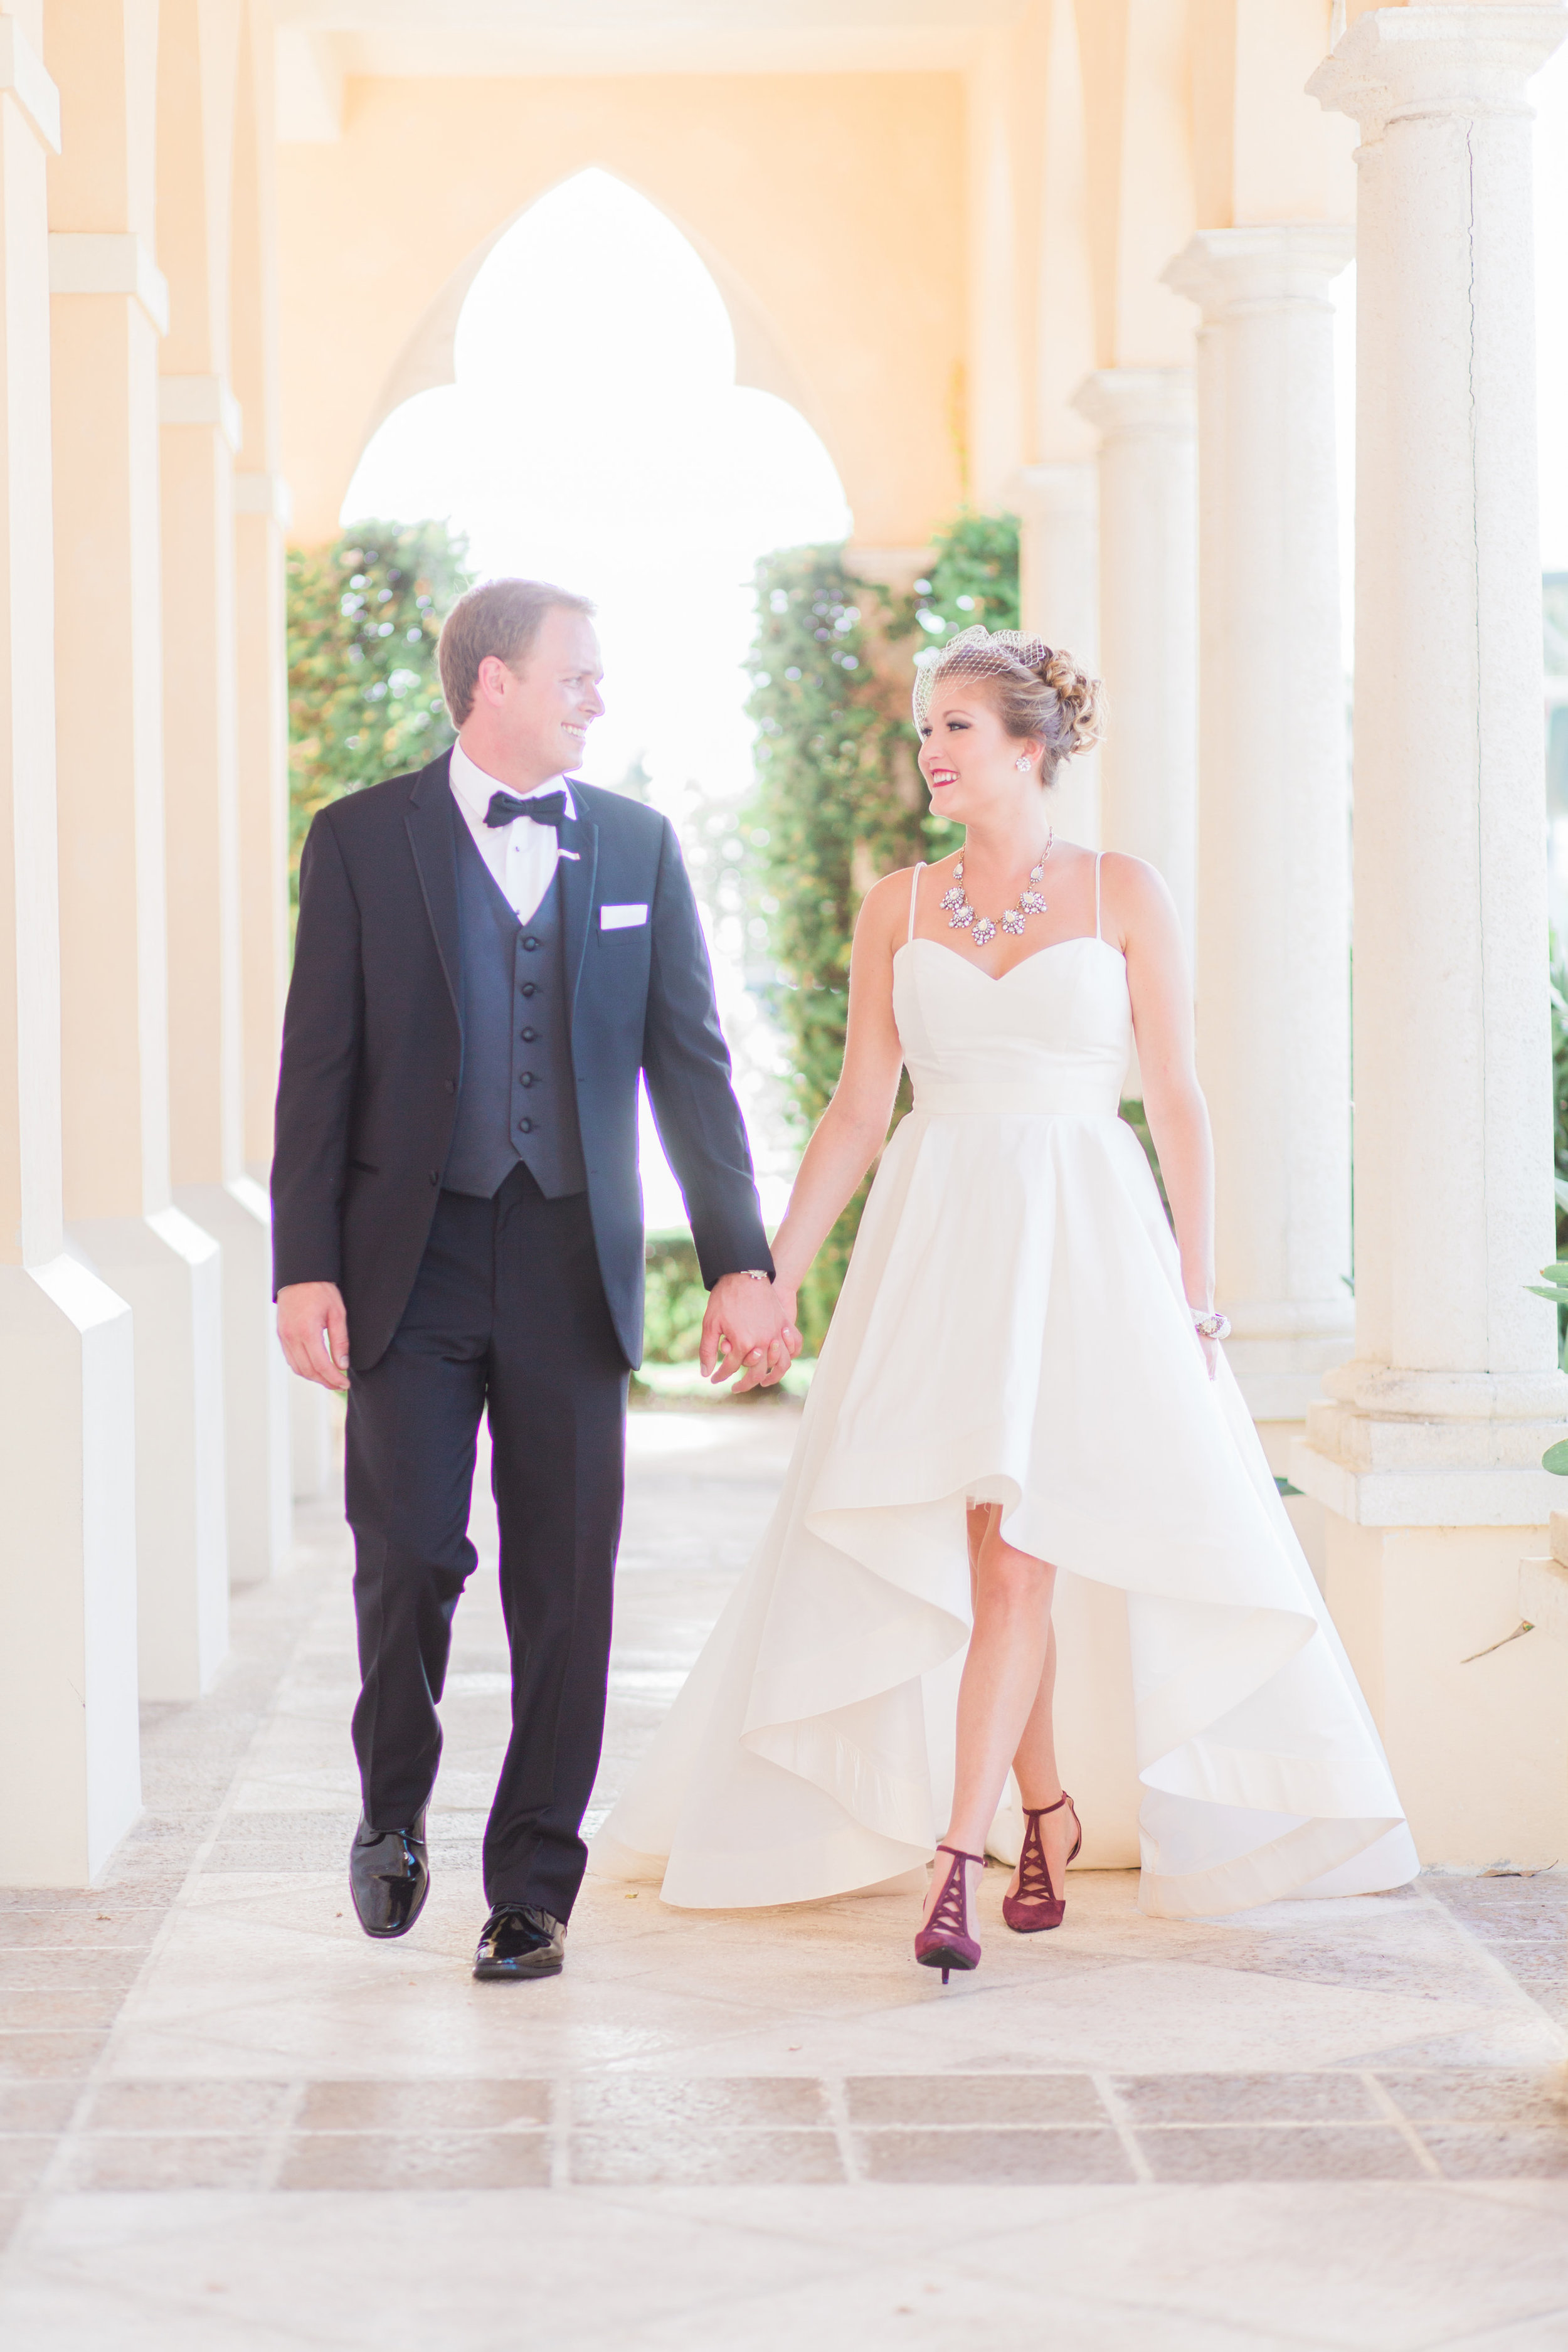 Anne Barge Ryland gown from Little White Dress in Denver   Boca Raton, Florida wedding at The Addison   Thompson Photography Group